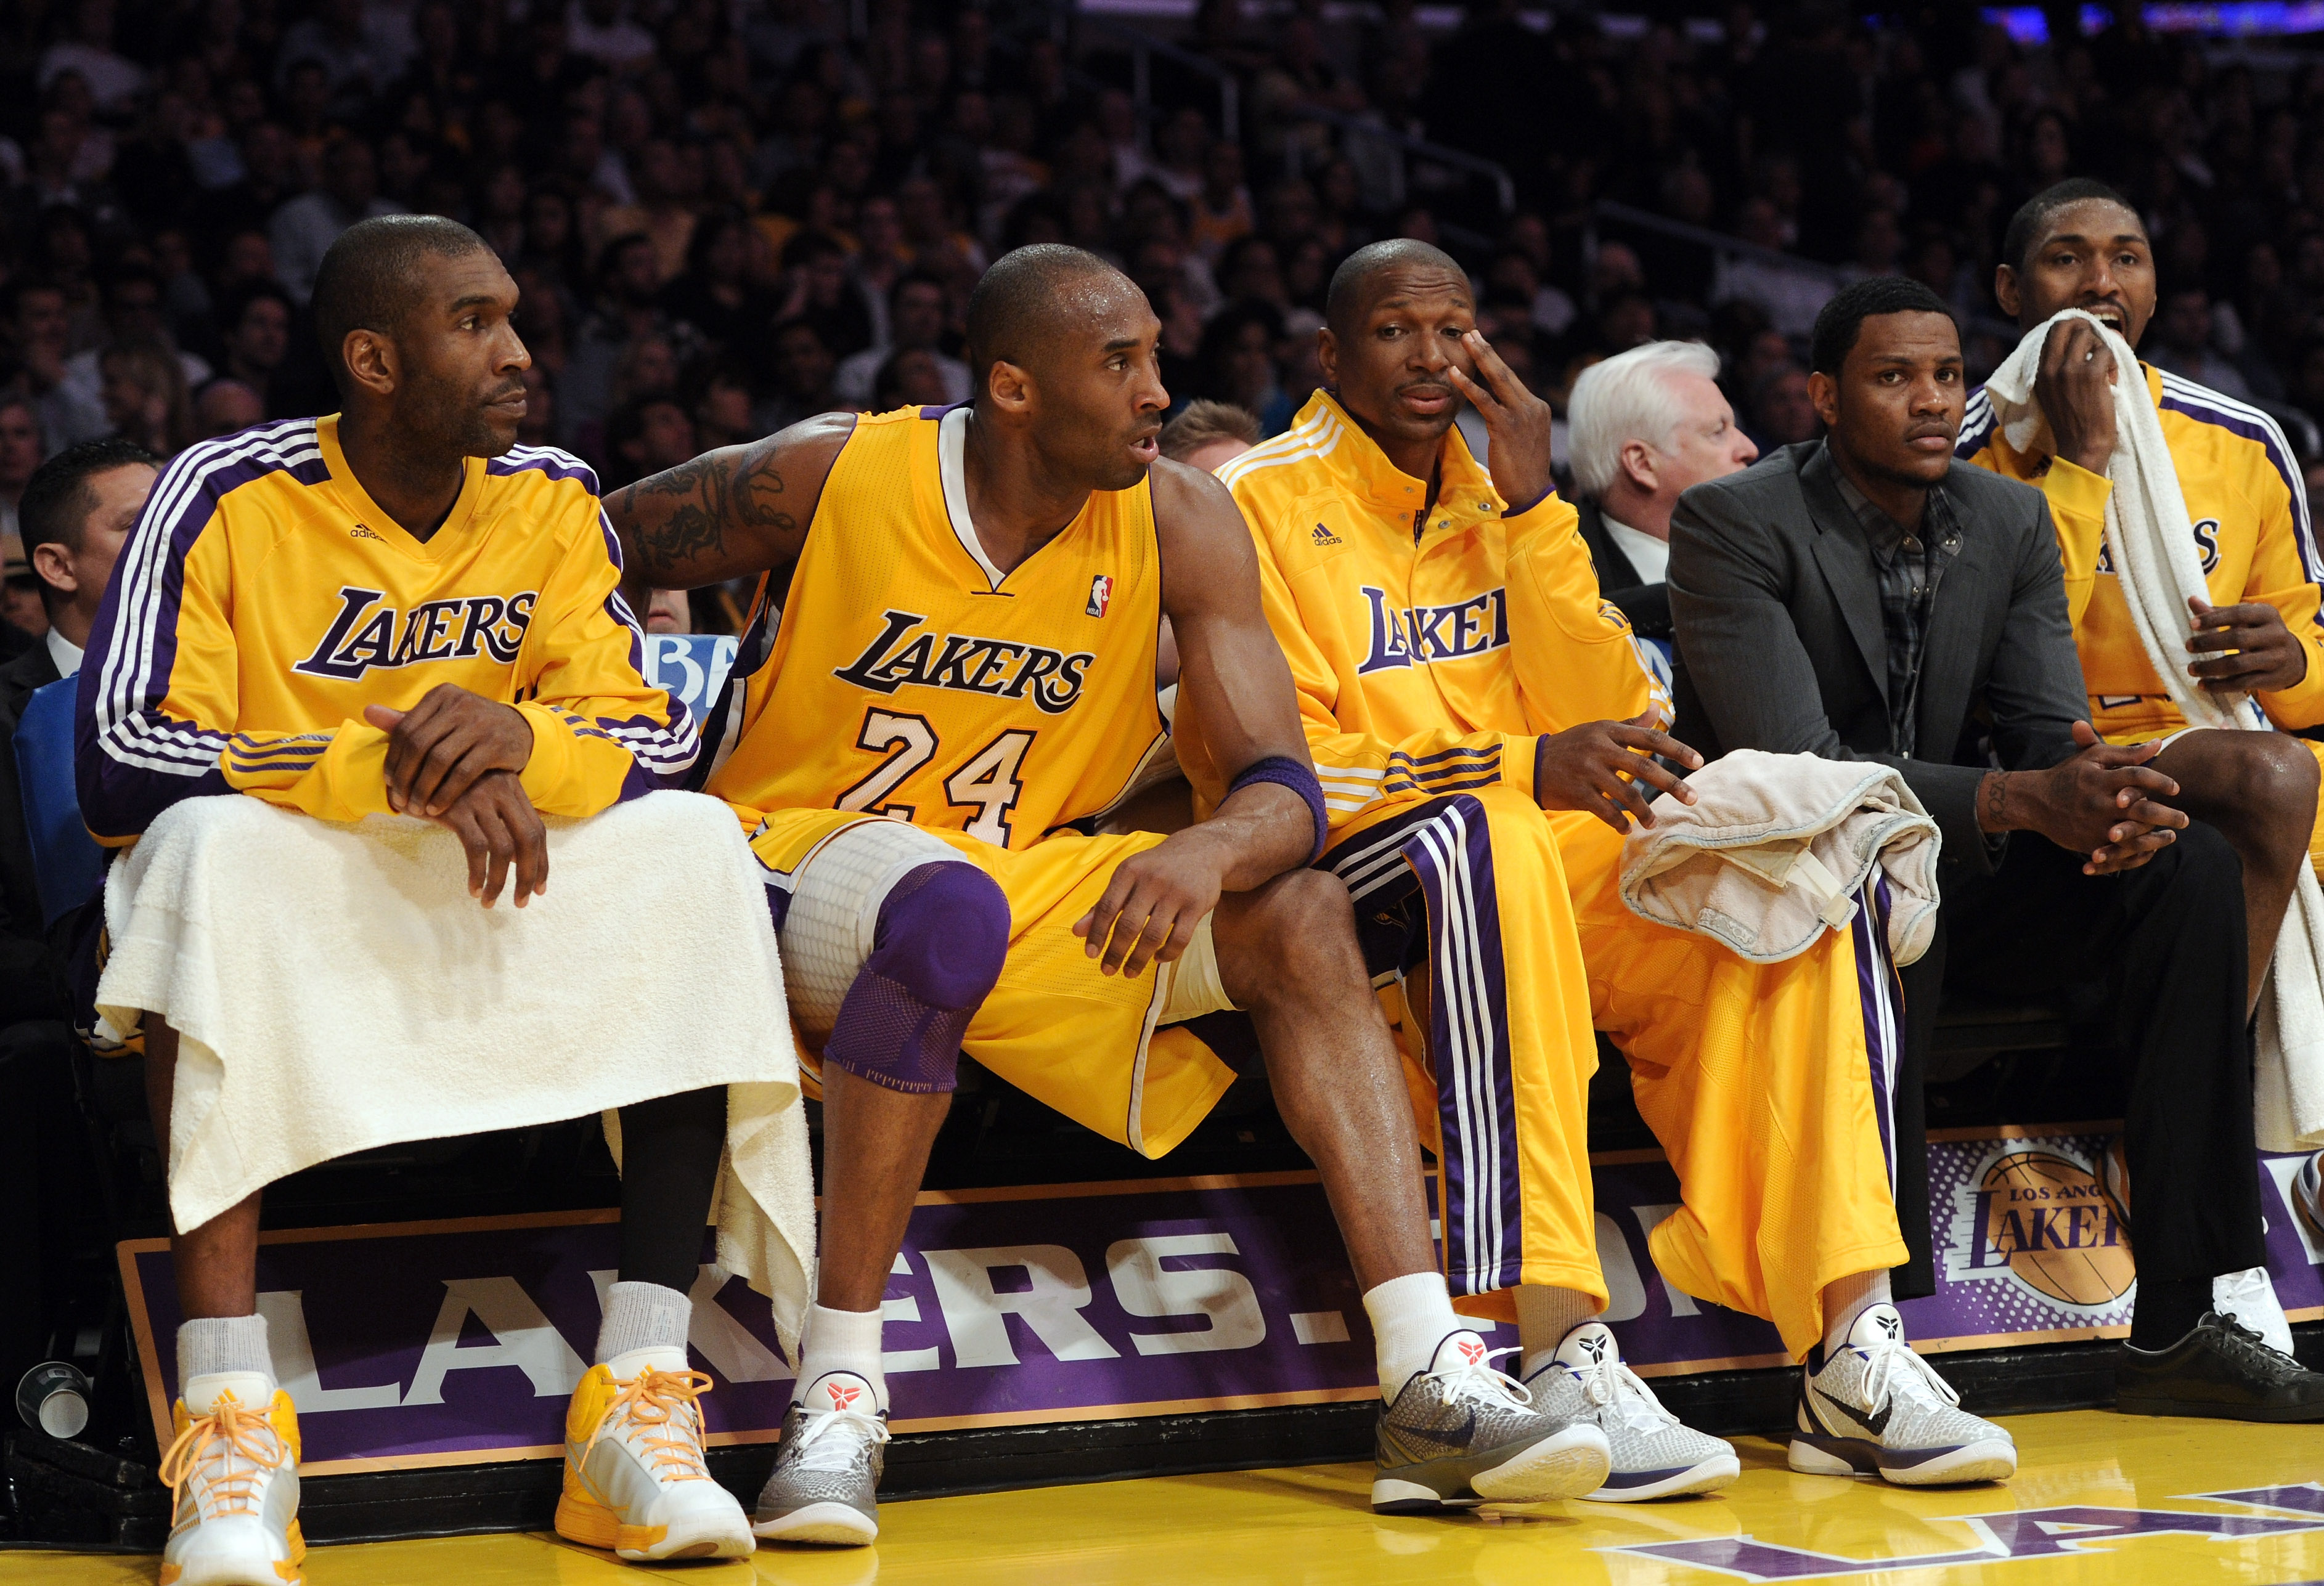 LOS ANGELES, CA - APRIL 12:  Kobe Bryant #24 of the Los Angeles Lakers sits on the bench after he is called for a technical foul at Staples Center on April 12, 2011 in Los Angeles, California.  NOTE TO USER: User expressly acknowledges and agrees that, by